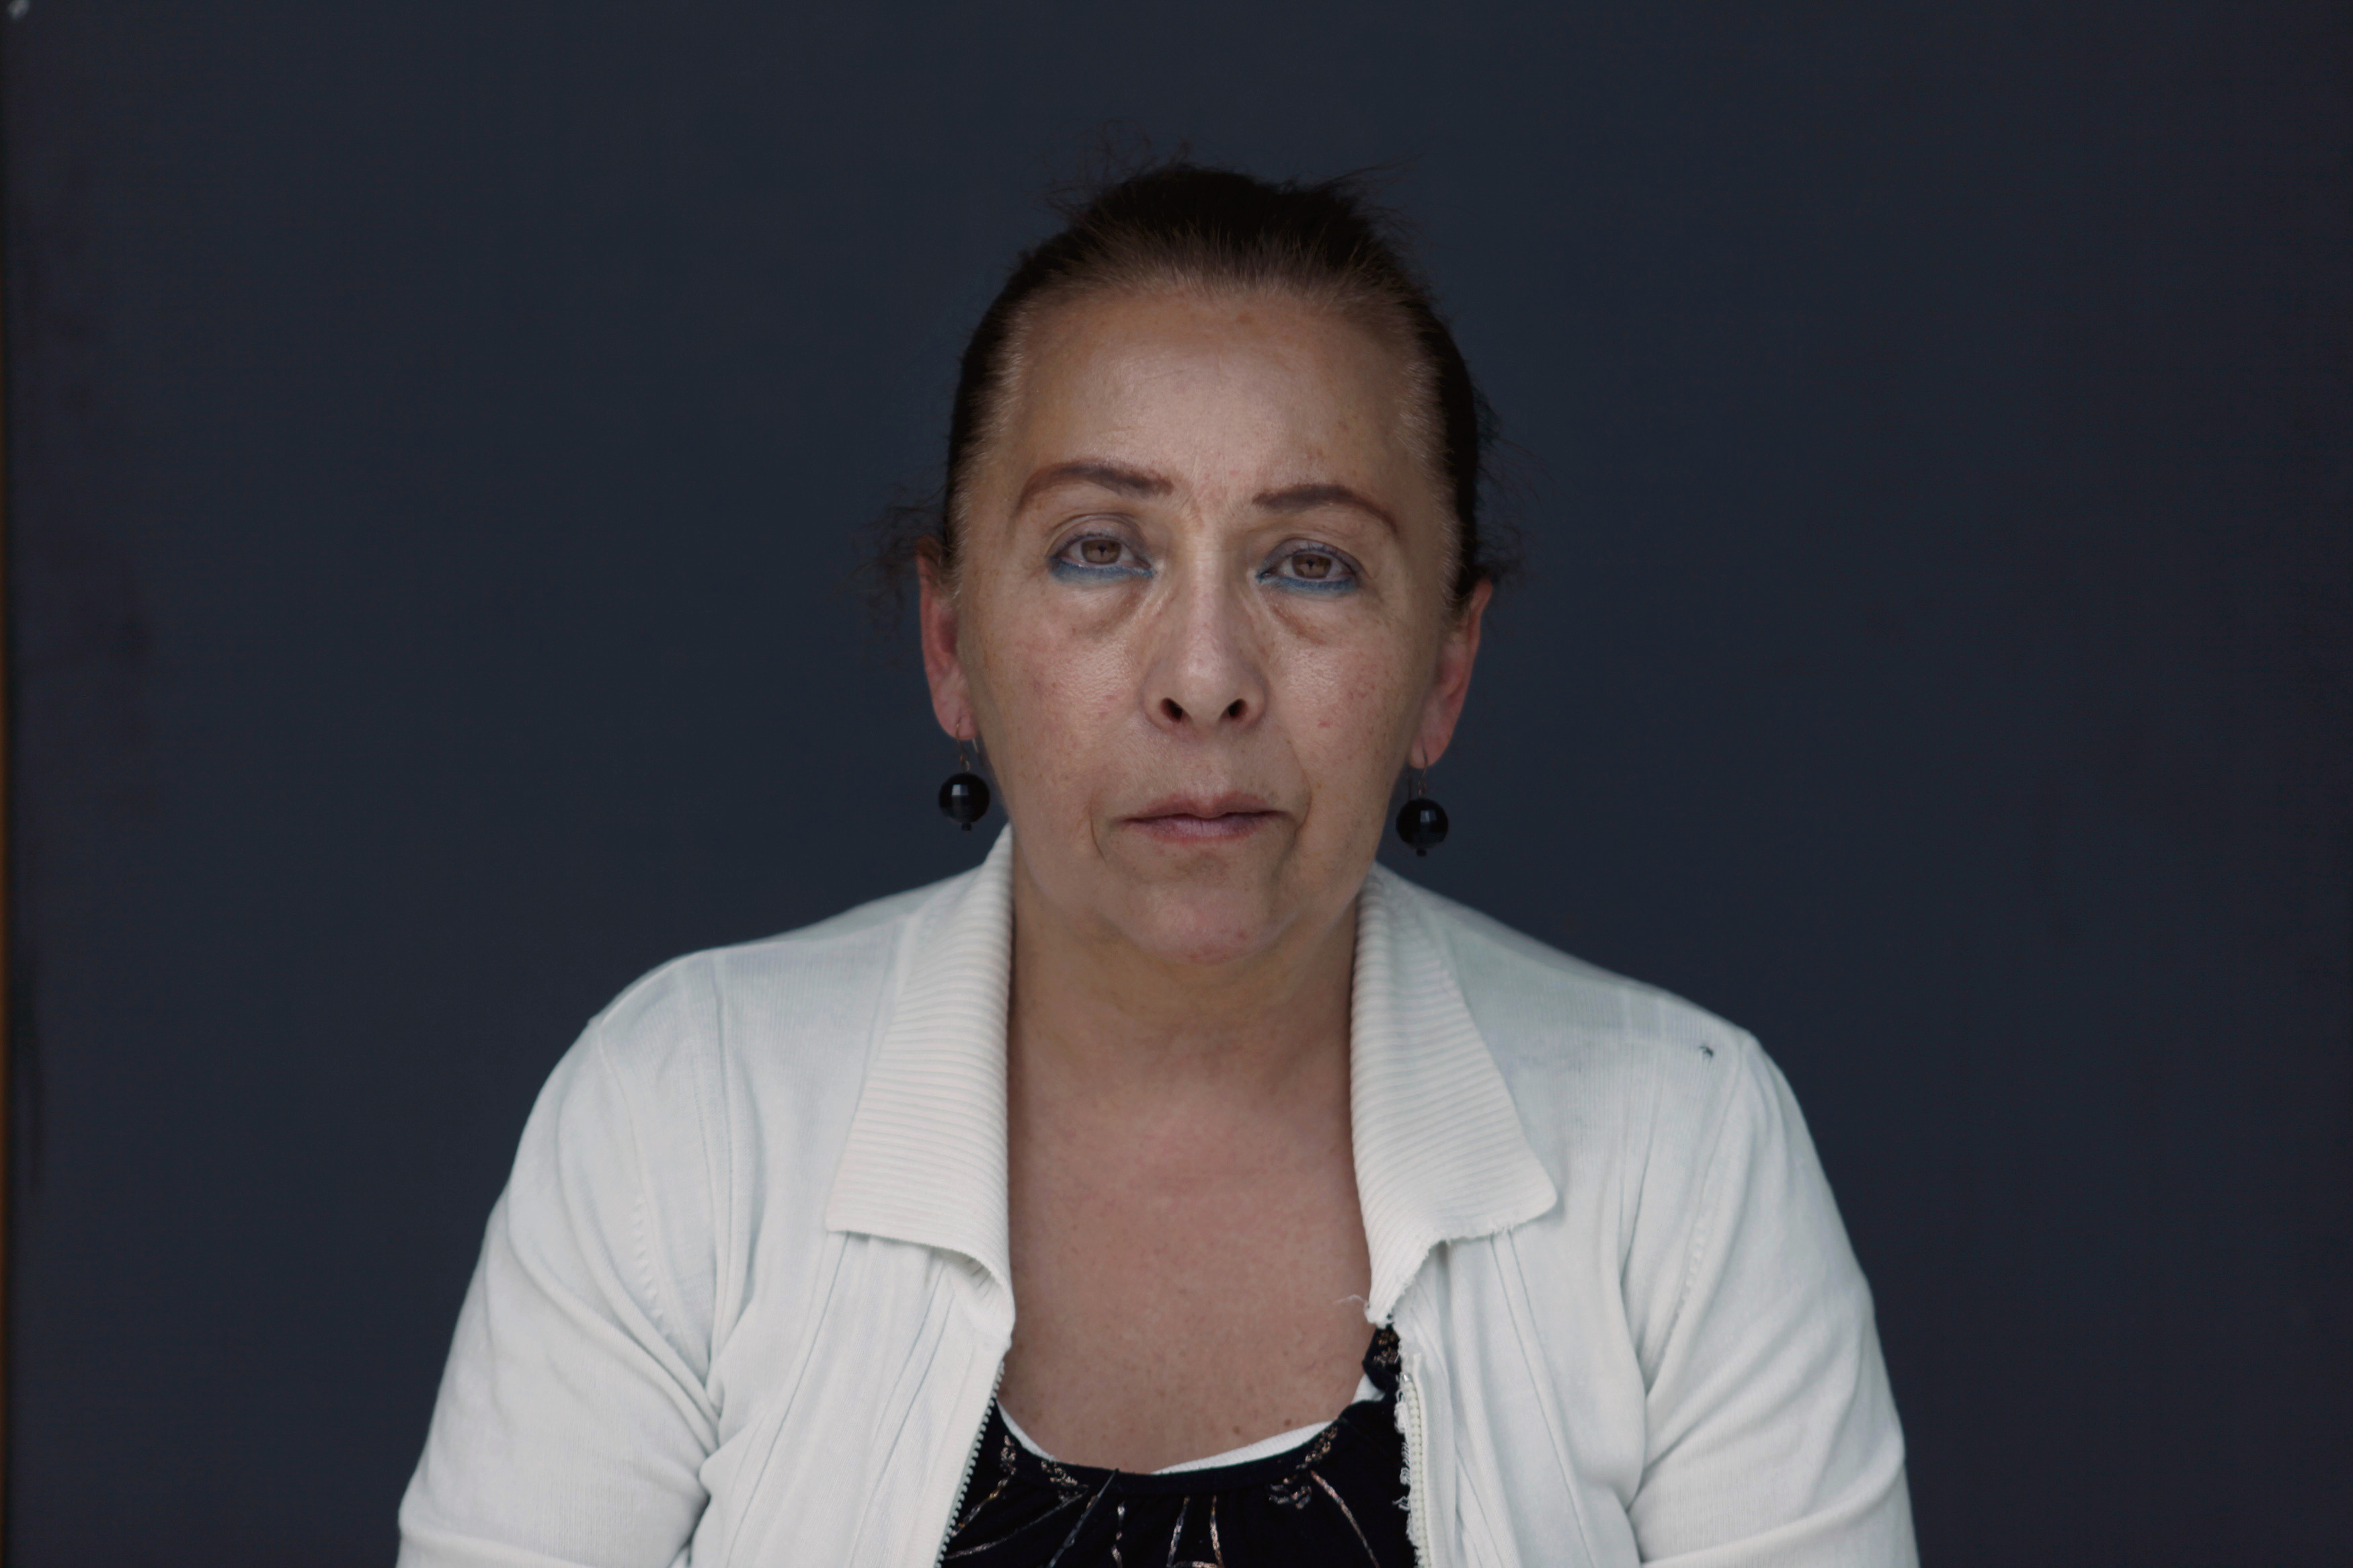 Laura, 60, a patient with Alzheimer's disease and vascular dementia, and former computer programming and psychology student.